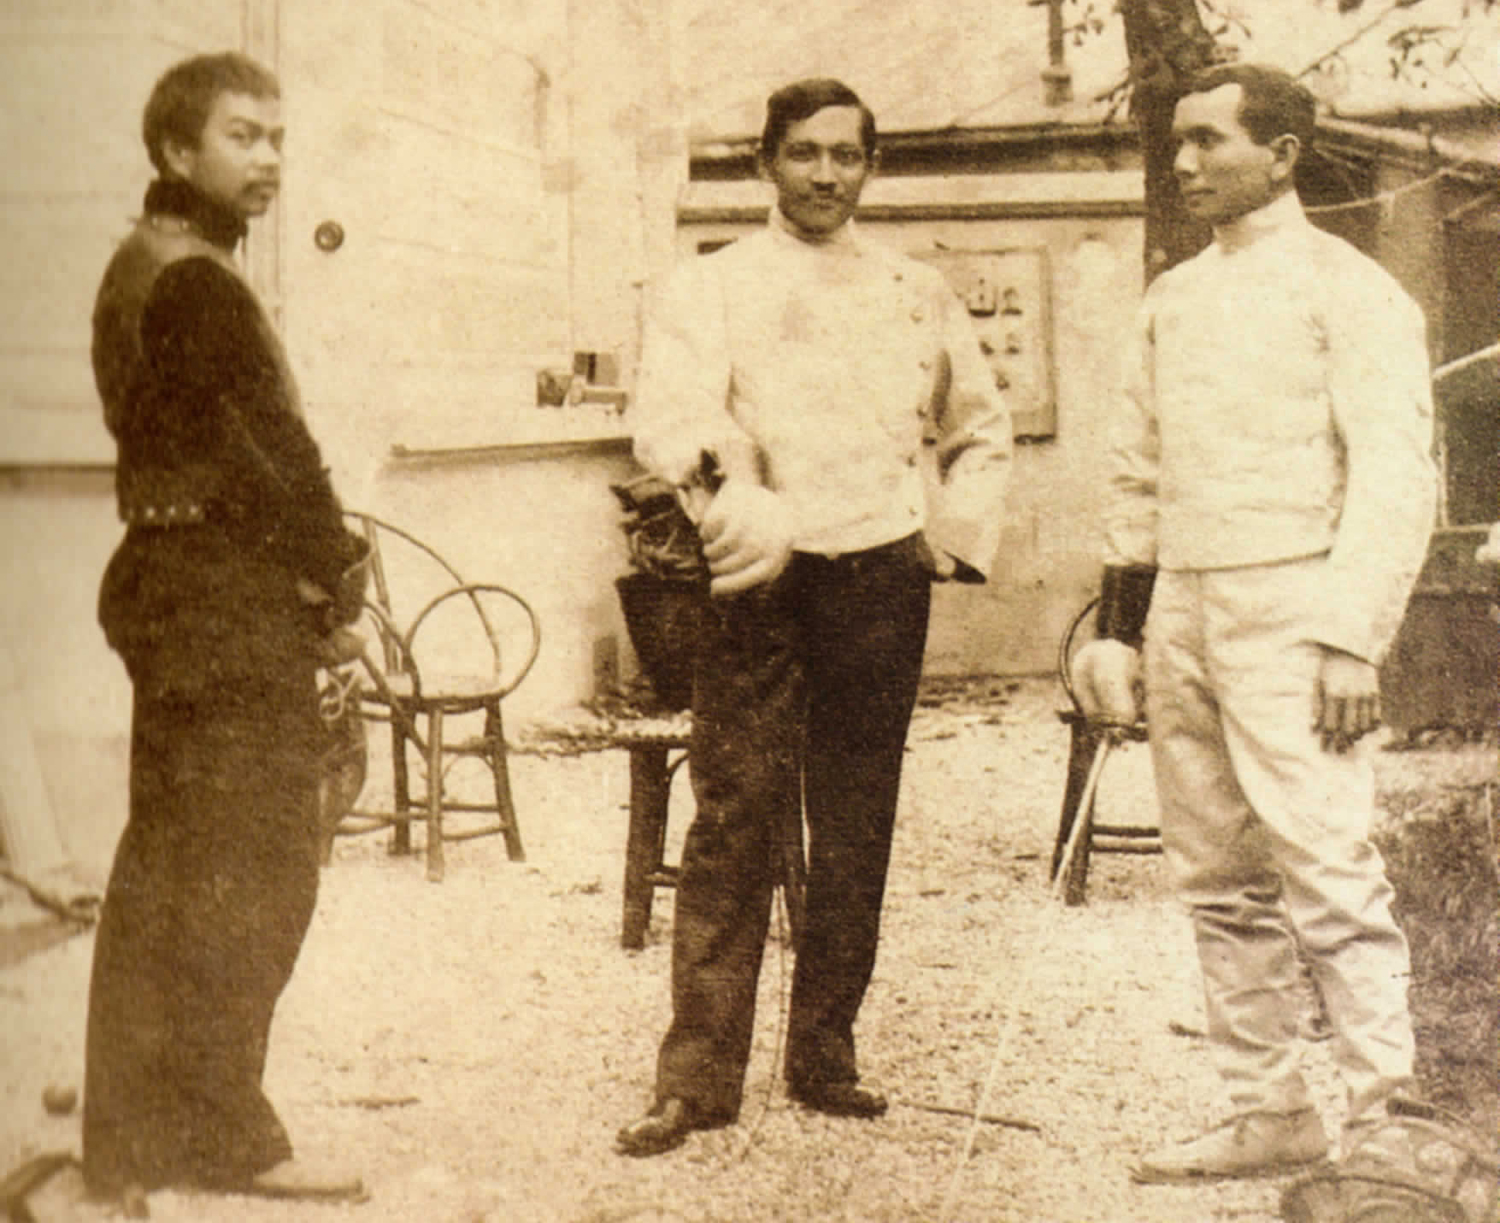 While studying in Europe, Jose Rizal (center) was passionateabout fencing, either practicing with fellow Filipinos or attendingmatches with his fraternity brothers, the Swabians. With Juan Luna(left) and Valentin Ventura.